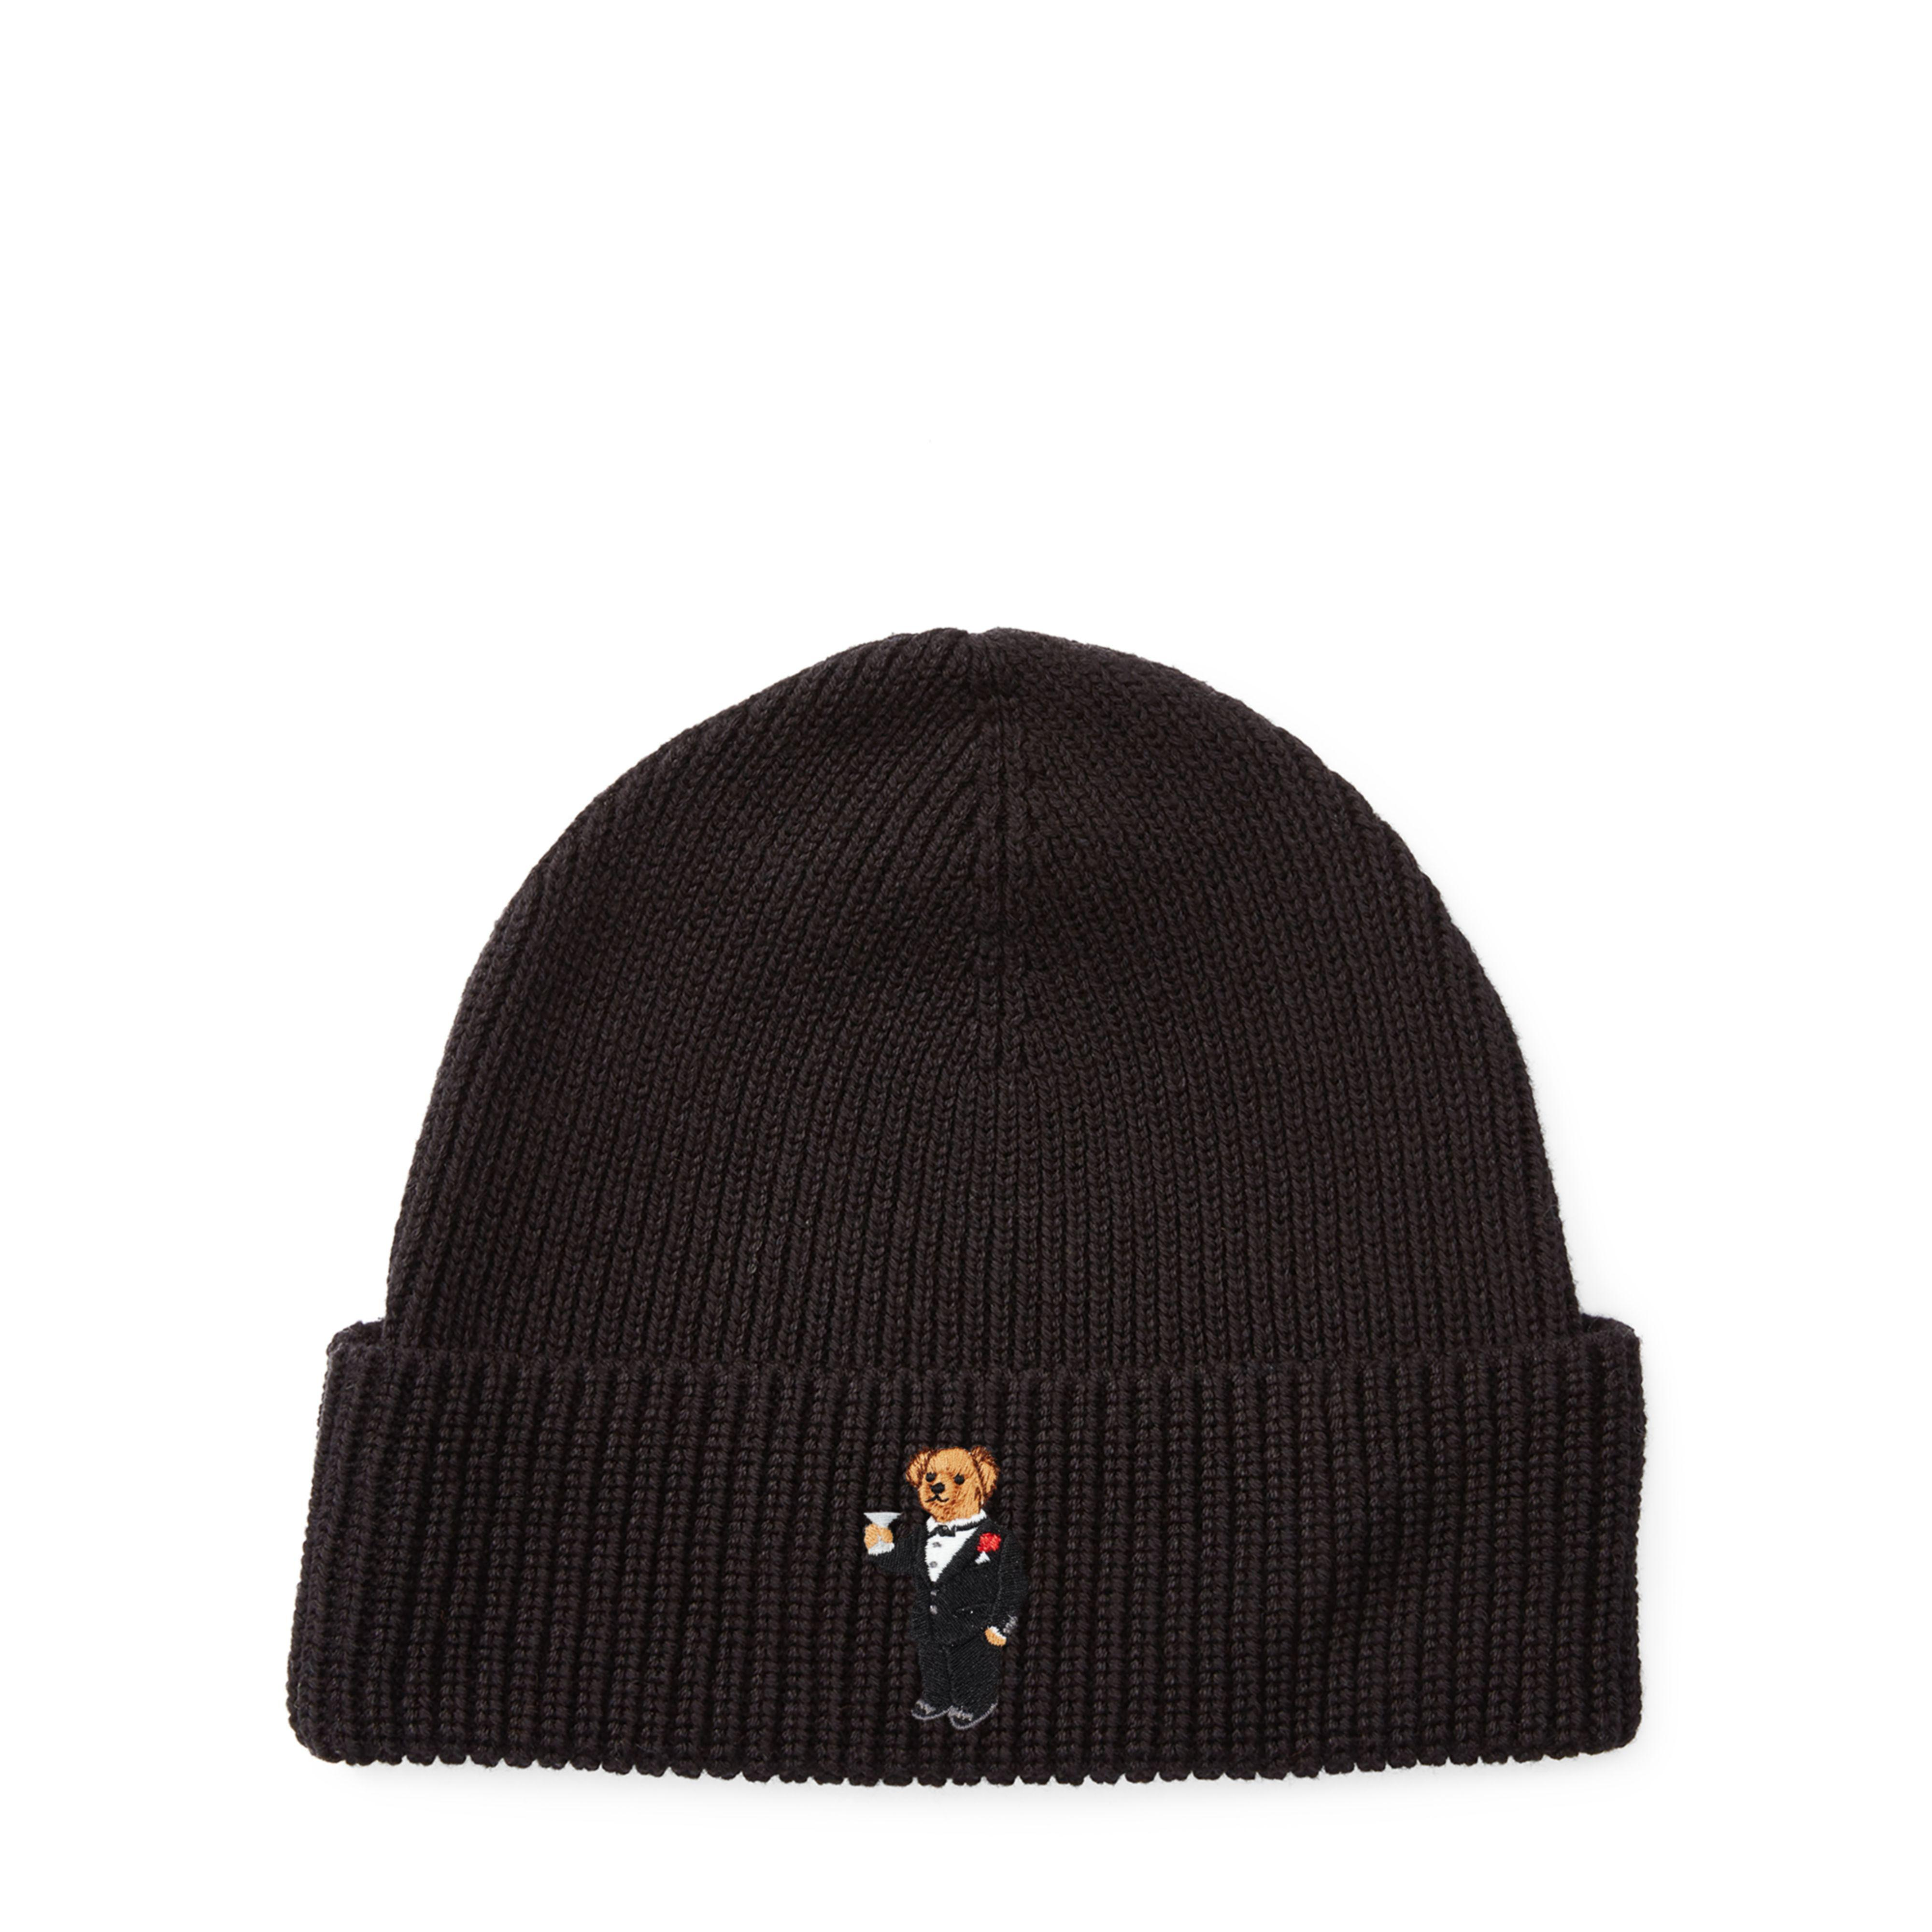 966841604445a Polo Ralph Lauren Martini Polo Bear Ribbed Hat in Black for Men - Lyst